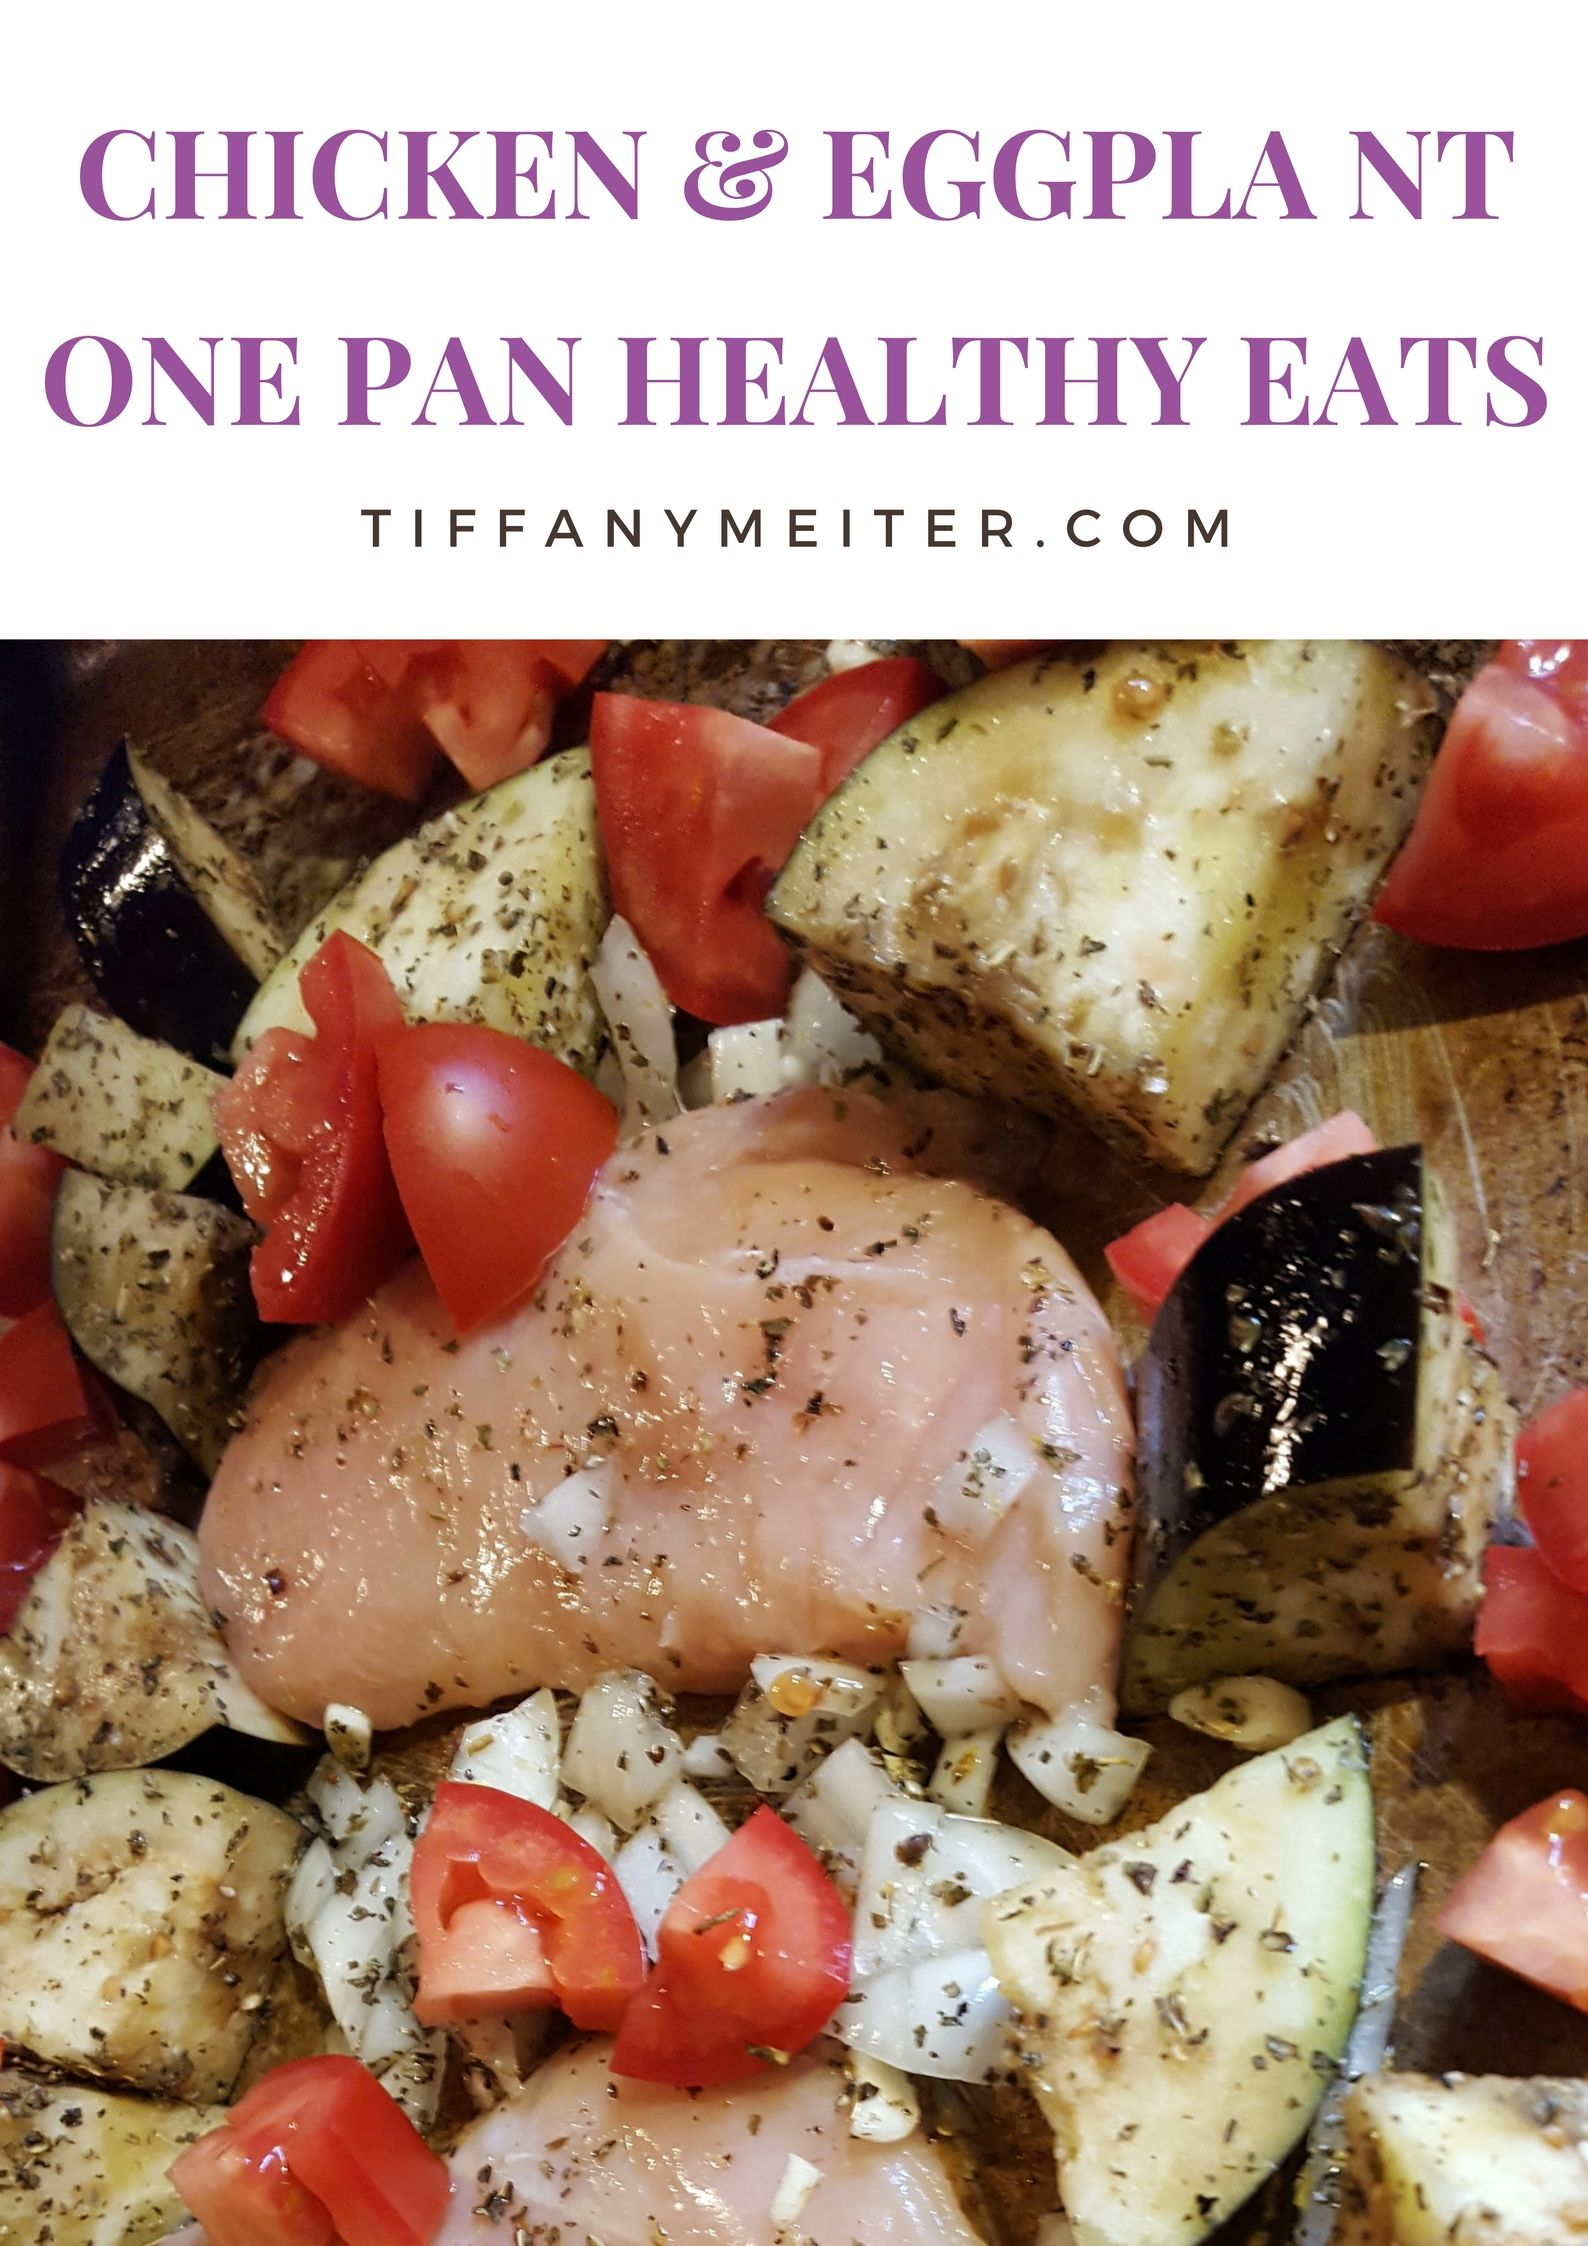 Chicken and Eggplant Recipe - Tiffany Meiter